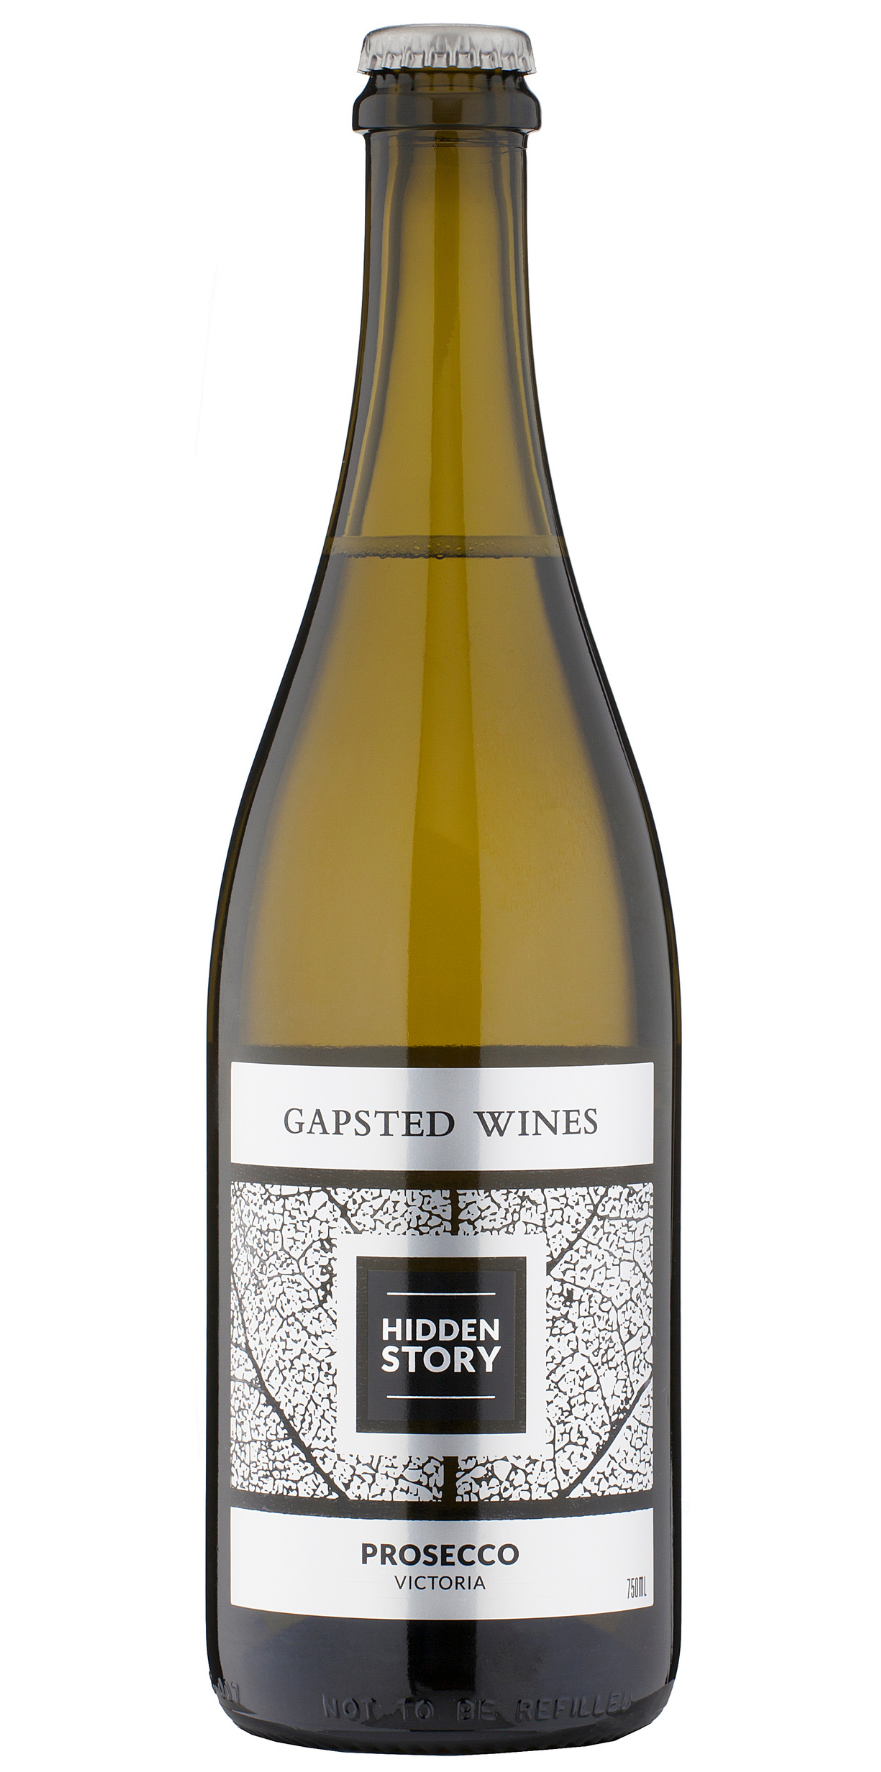 Hidden Story NV Prosecco - Gapsted Wines